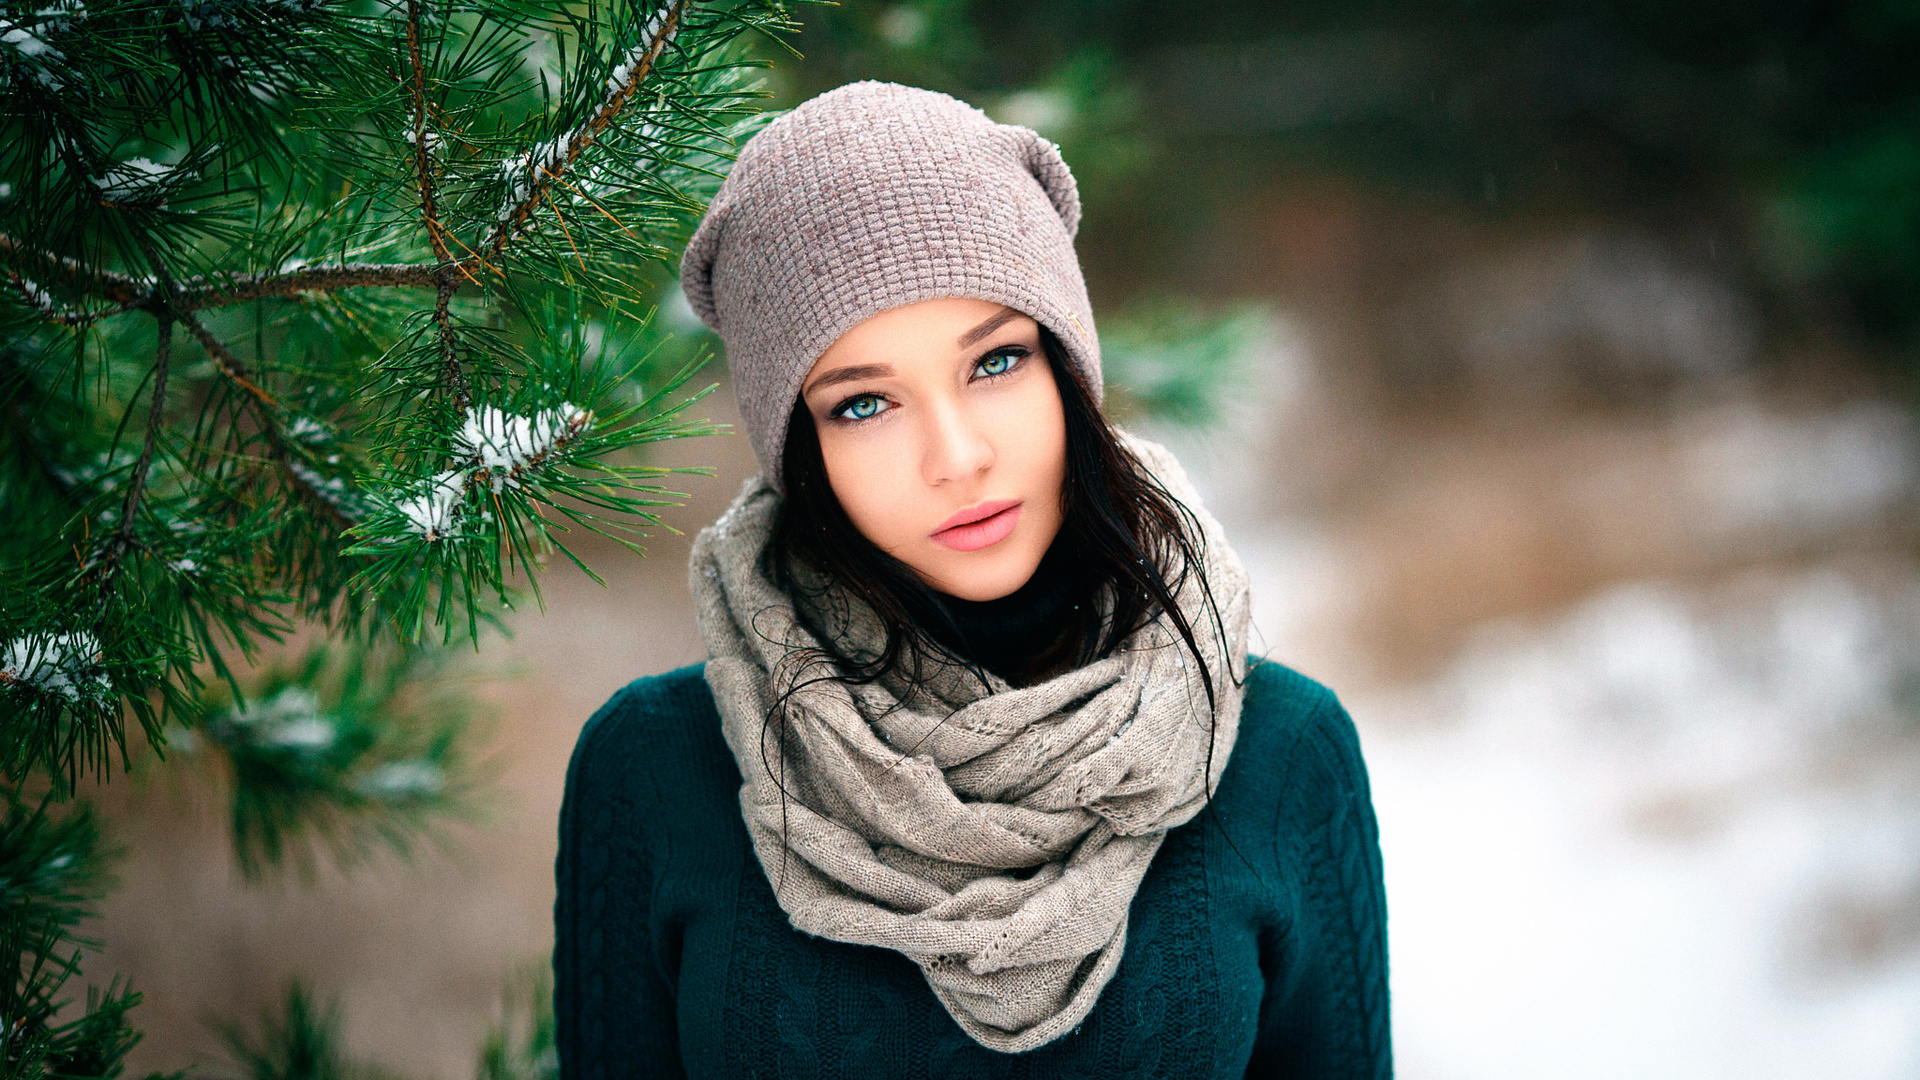 Girl Wallpaper: Winter Girl Wallpapers Images Photos Pictures Backgrounds